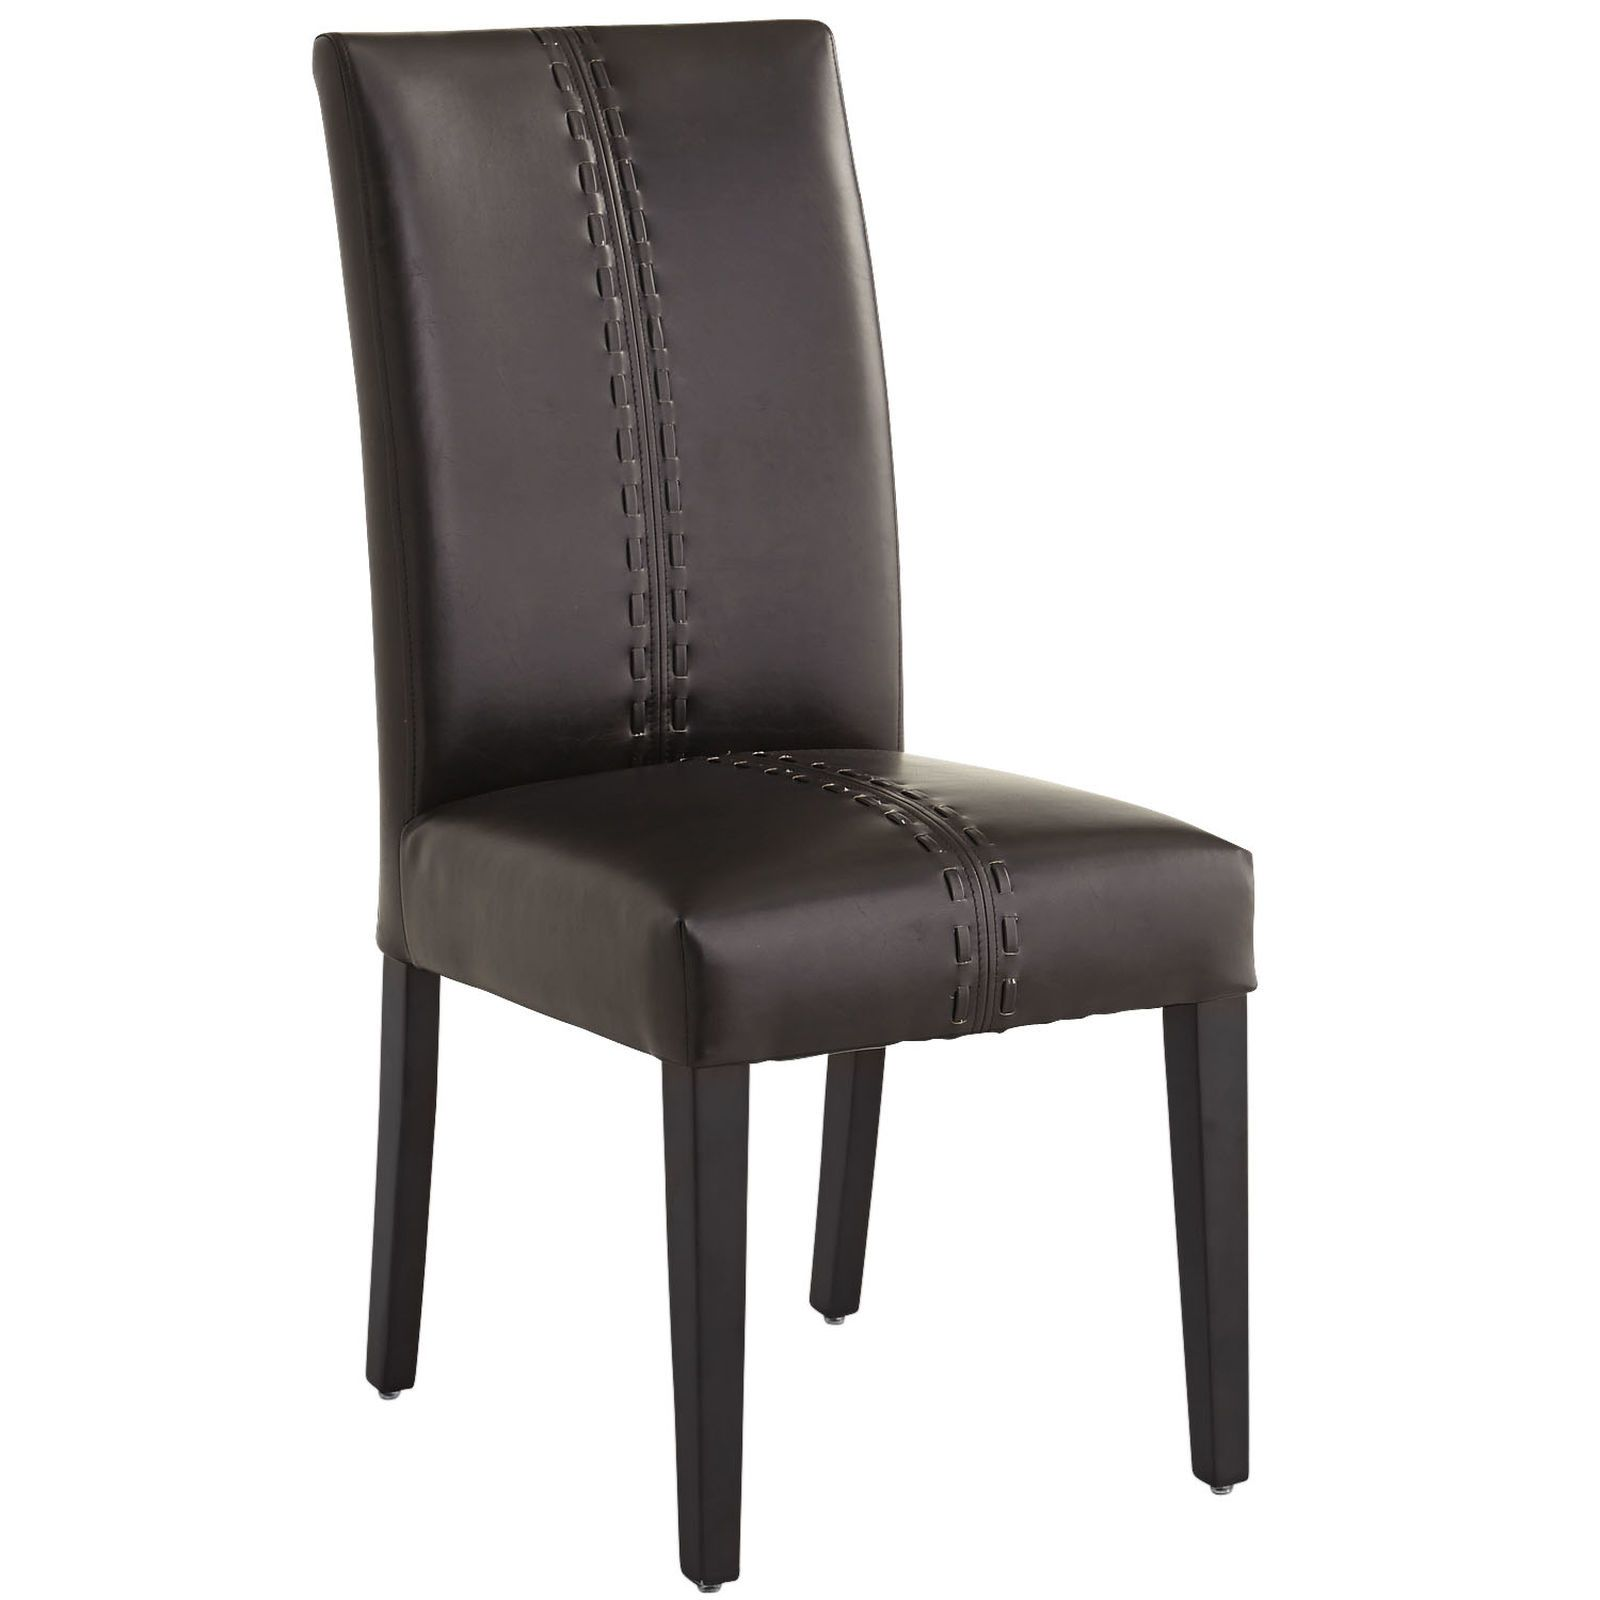 Pier 1 Imports Hank Brown Deluxe Dining